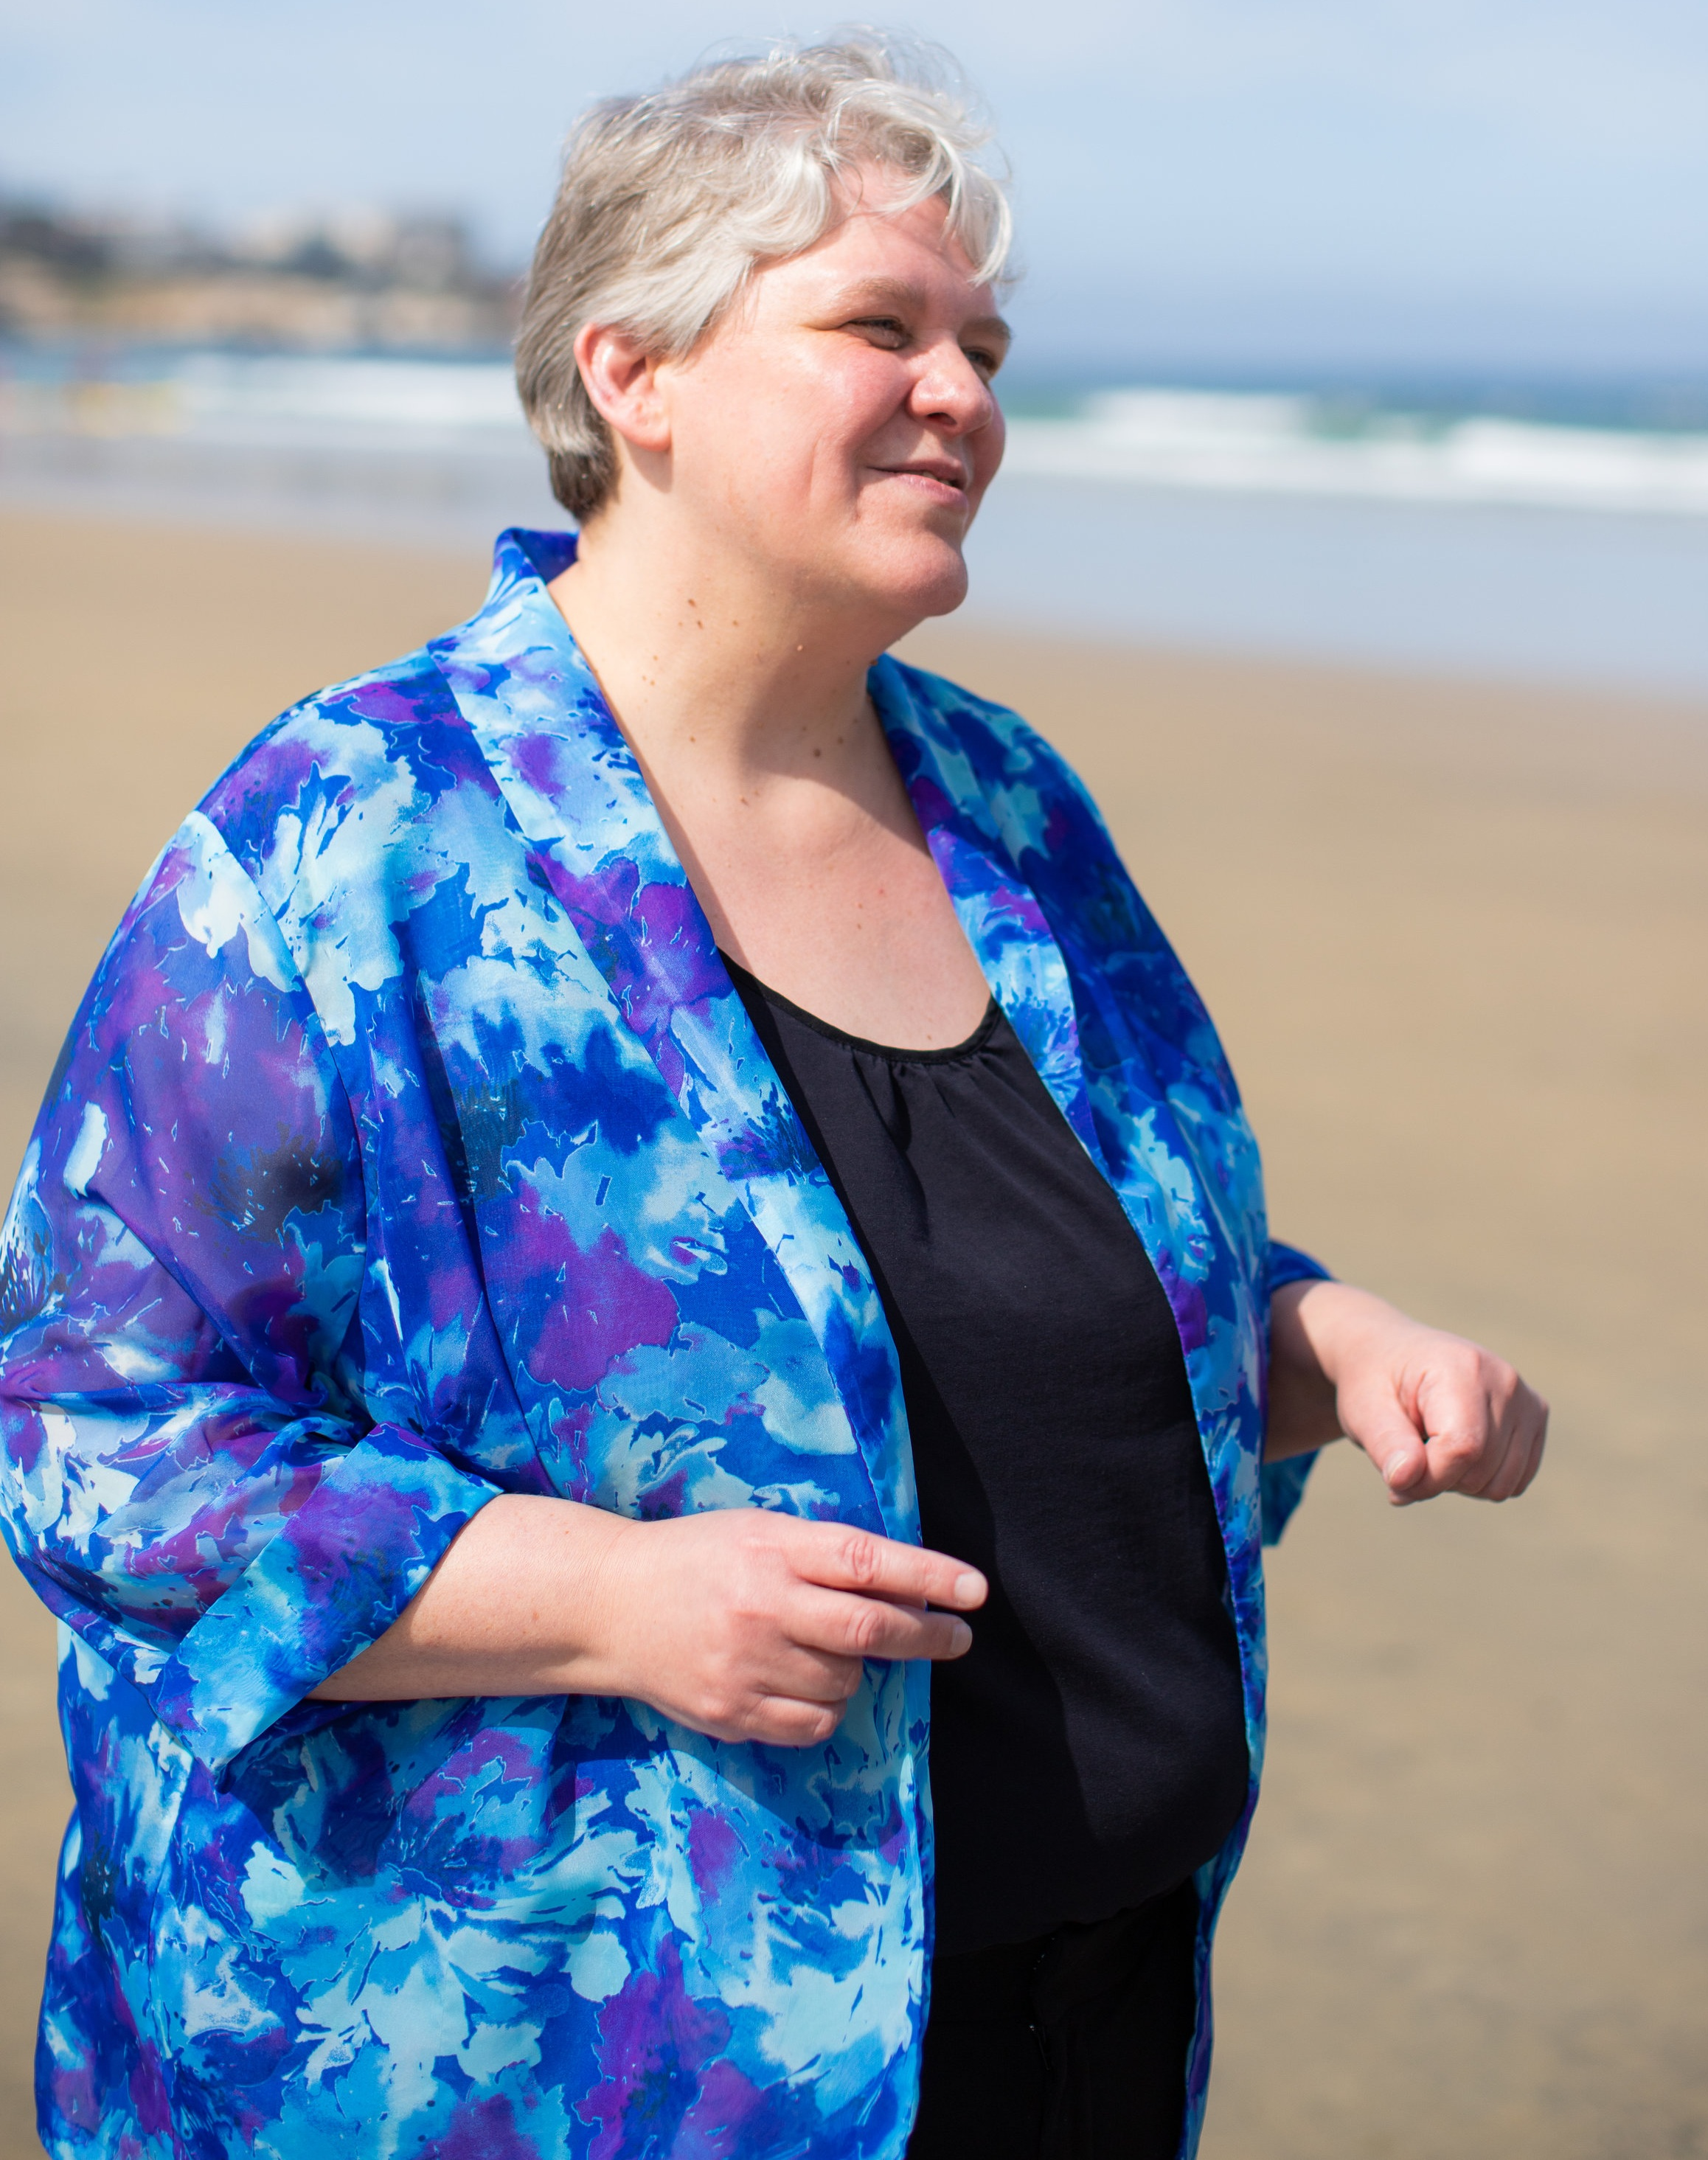 Your story is important to me. - The picture is of Dr. Camilla Williams, standing on the beach and wearing a blue and purple flowing jacket over a black shirt.